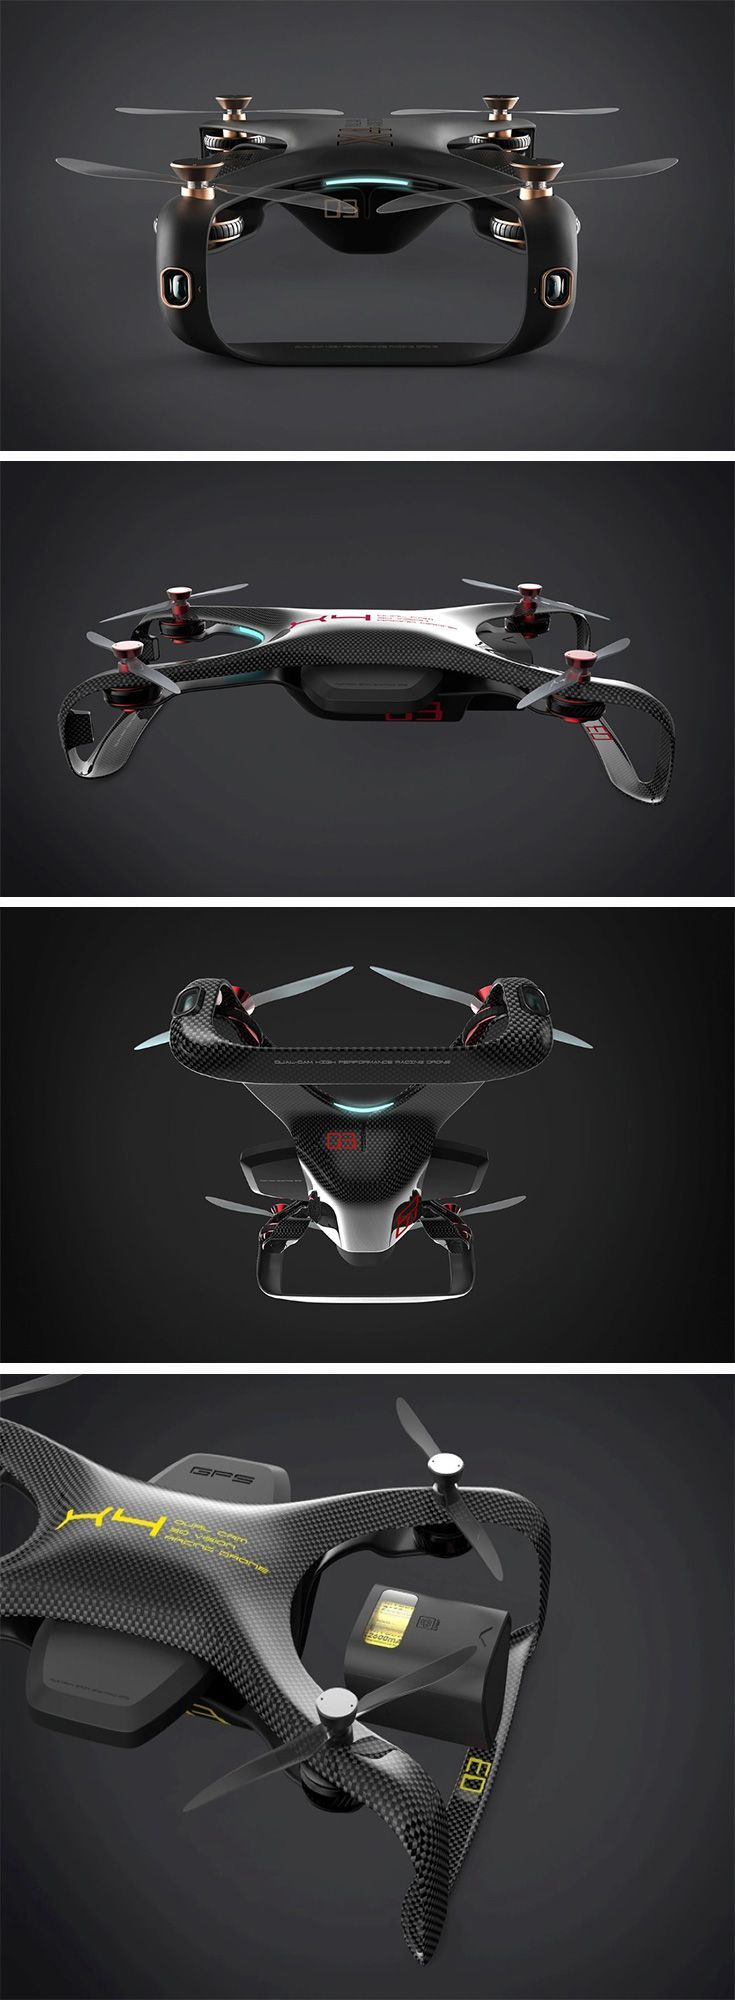 The Racing Drone concept is all about looking badass, and slicing through the ai...